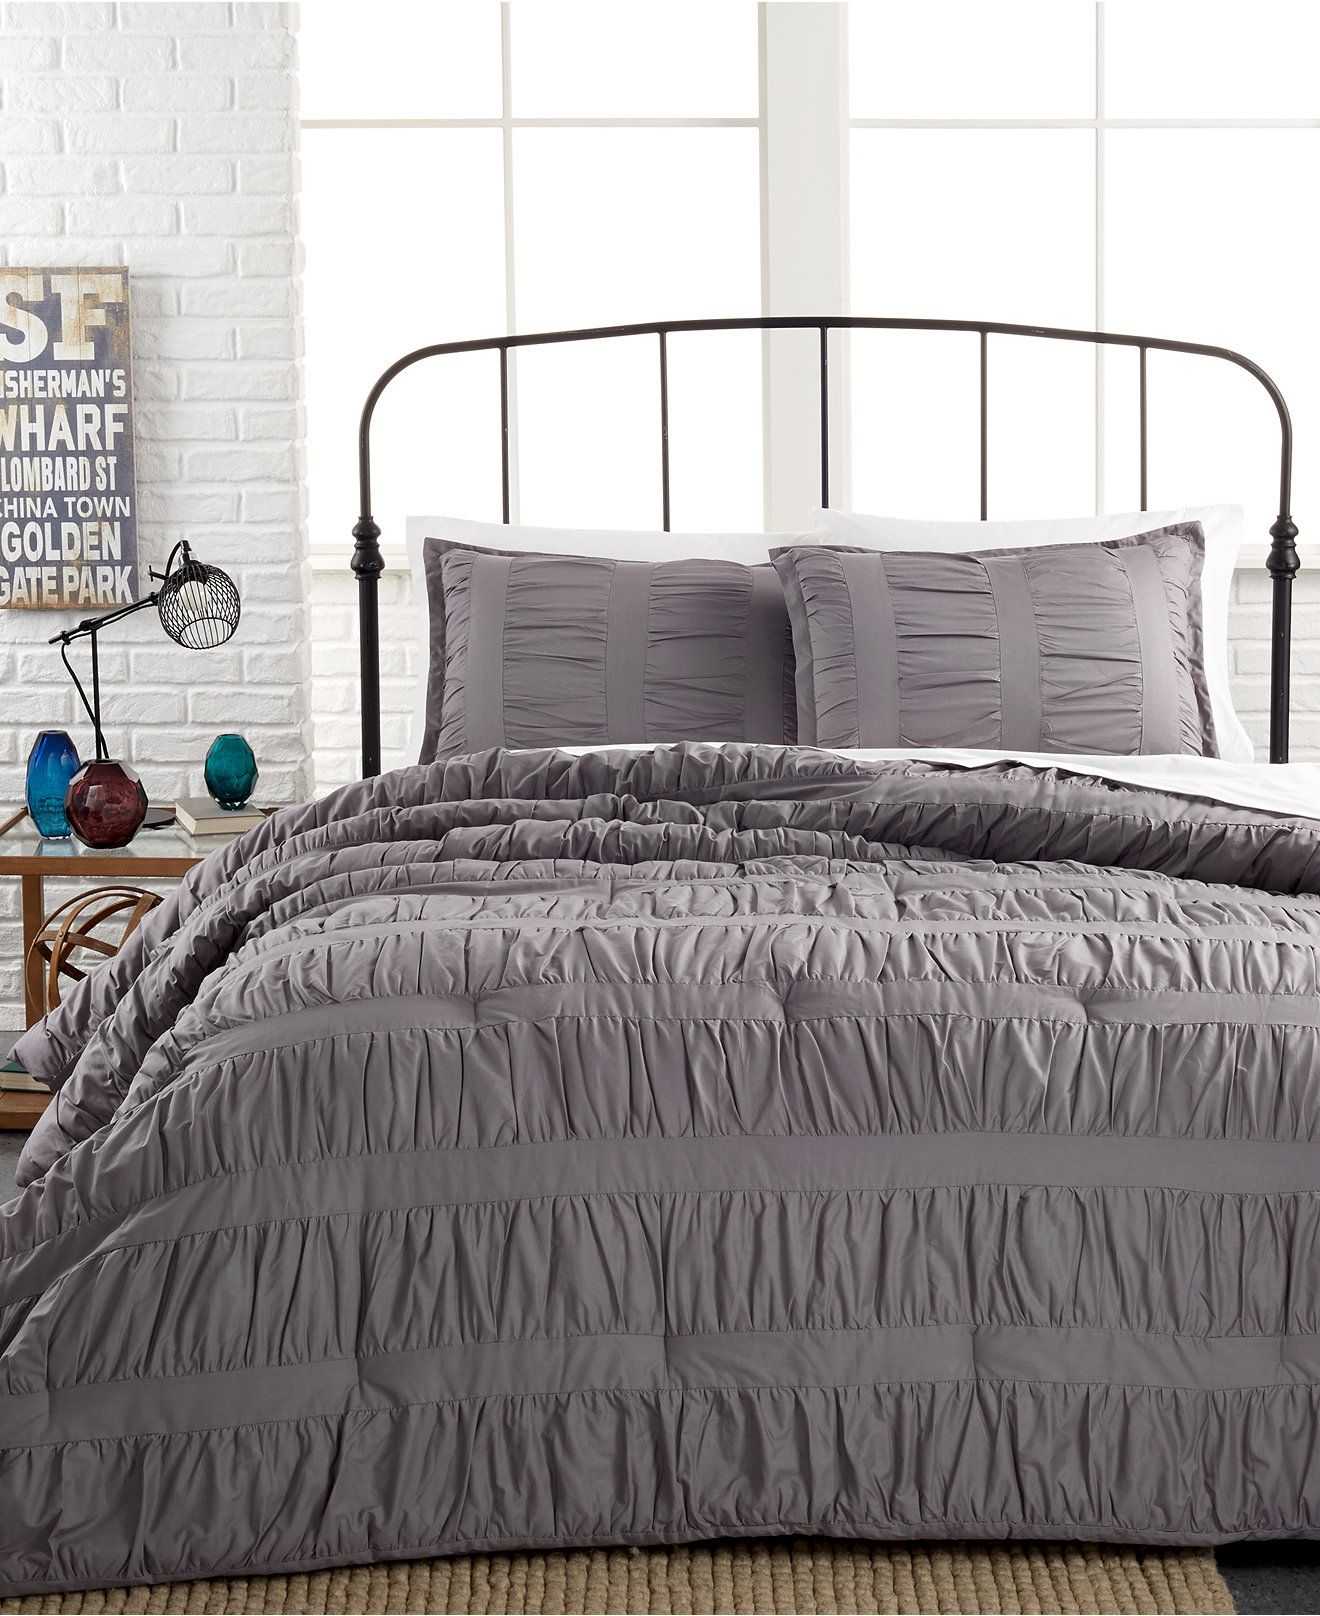 grey and charcoal picture images duvetvers magnificent comforter kingmforter gray white dark impressive queen black sets set bedding sheets designs